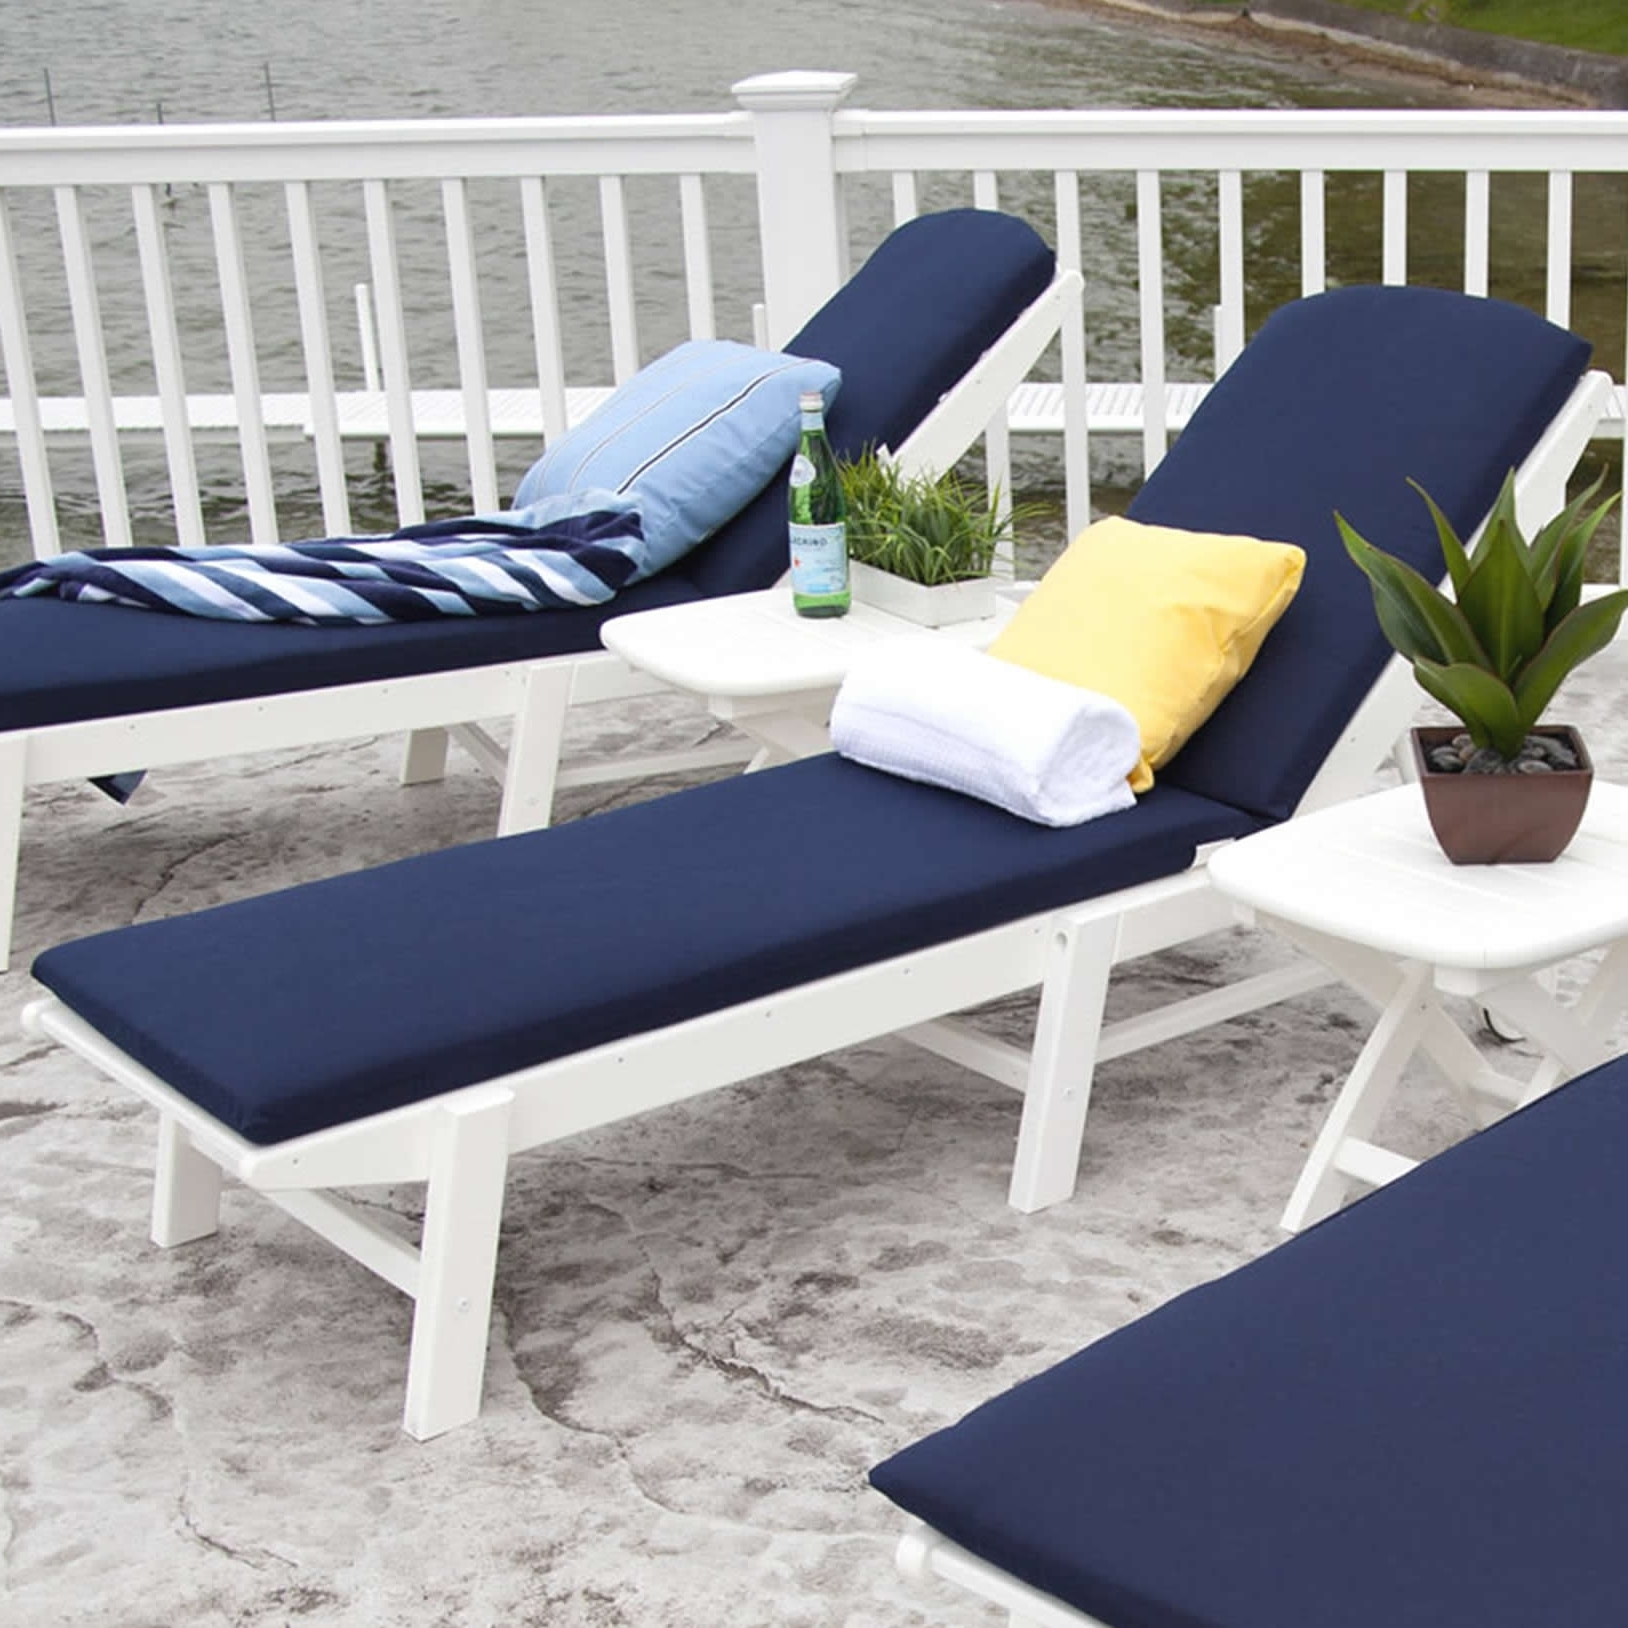 Widely Used Outdoor Cushions For Chaise Lounge Chairs Regarding Polywood Nautical Chaise Lounge Cushions (View 15 of 15)